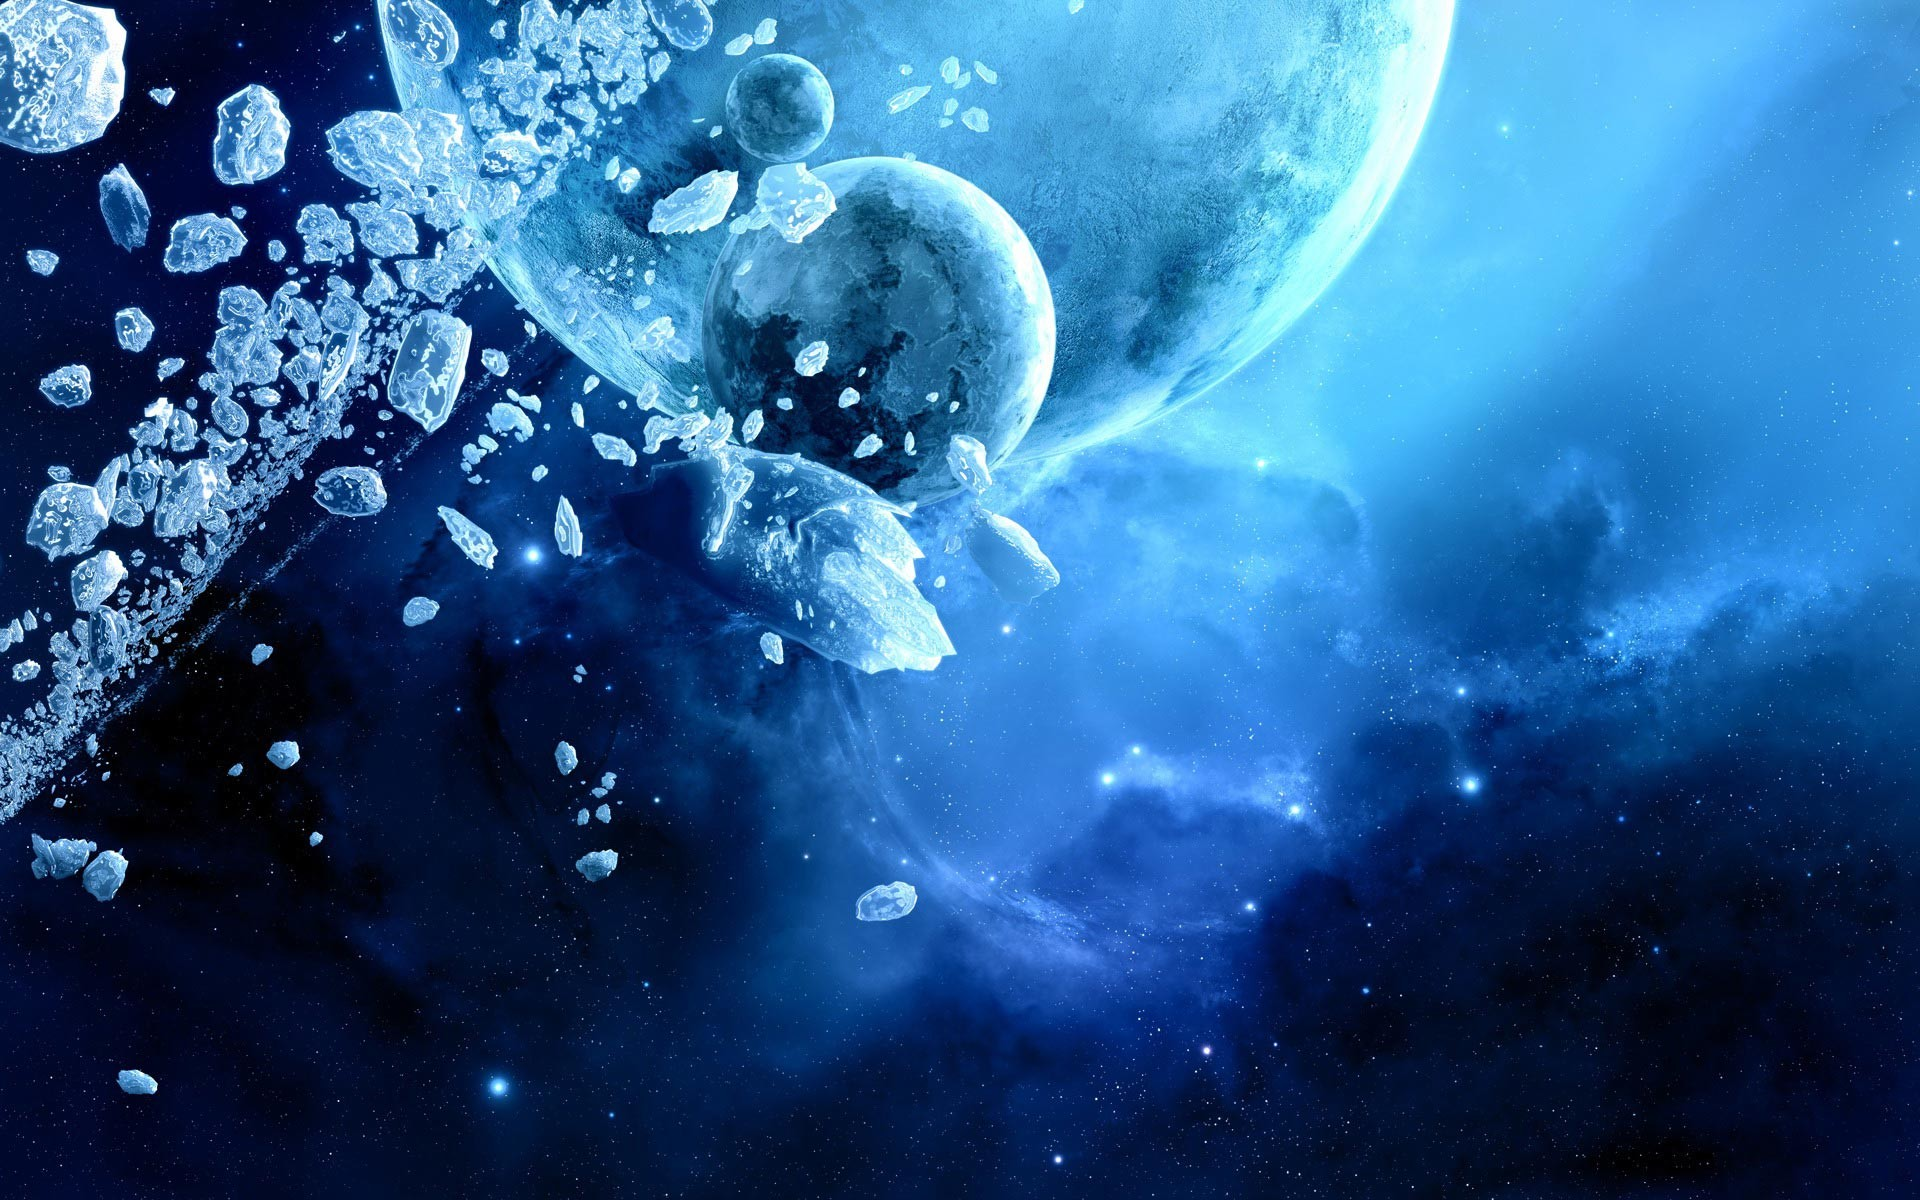 5 – Cool Space Wallpapers